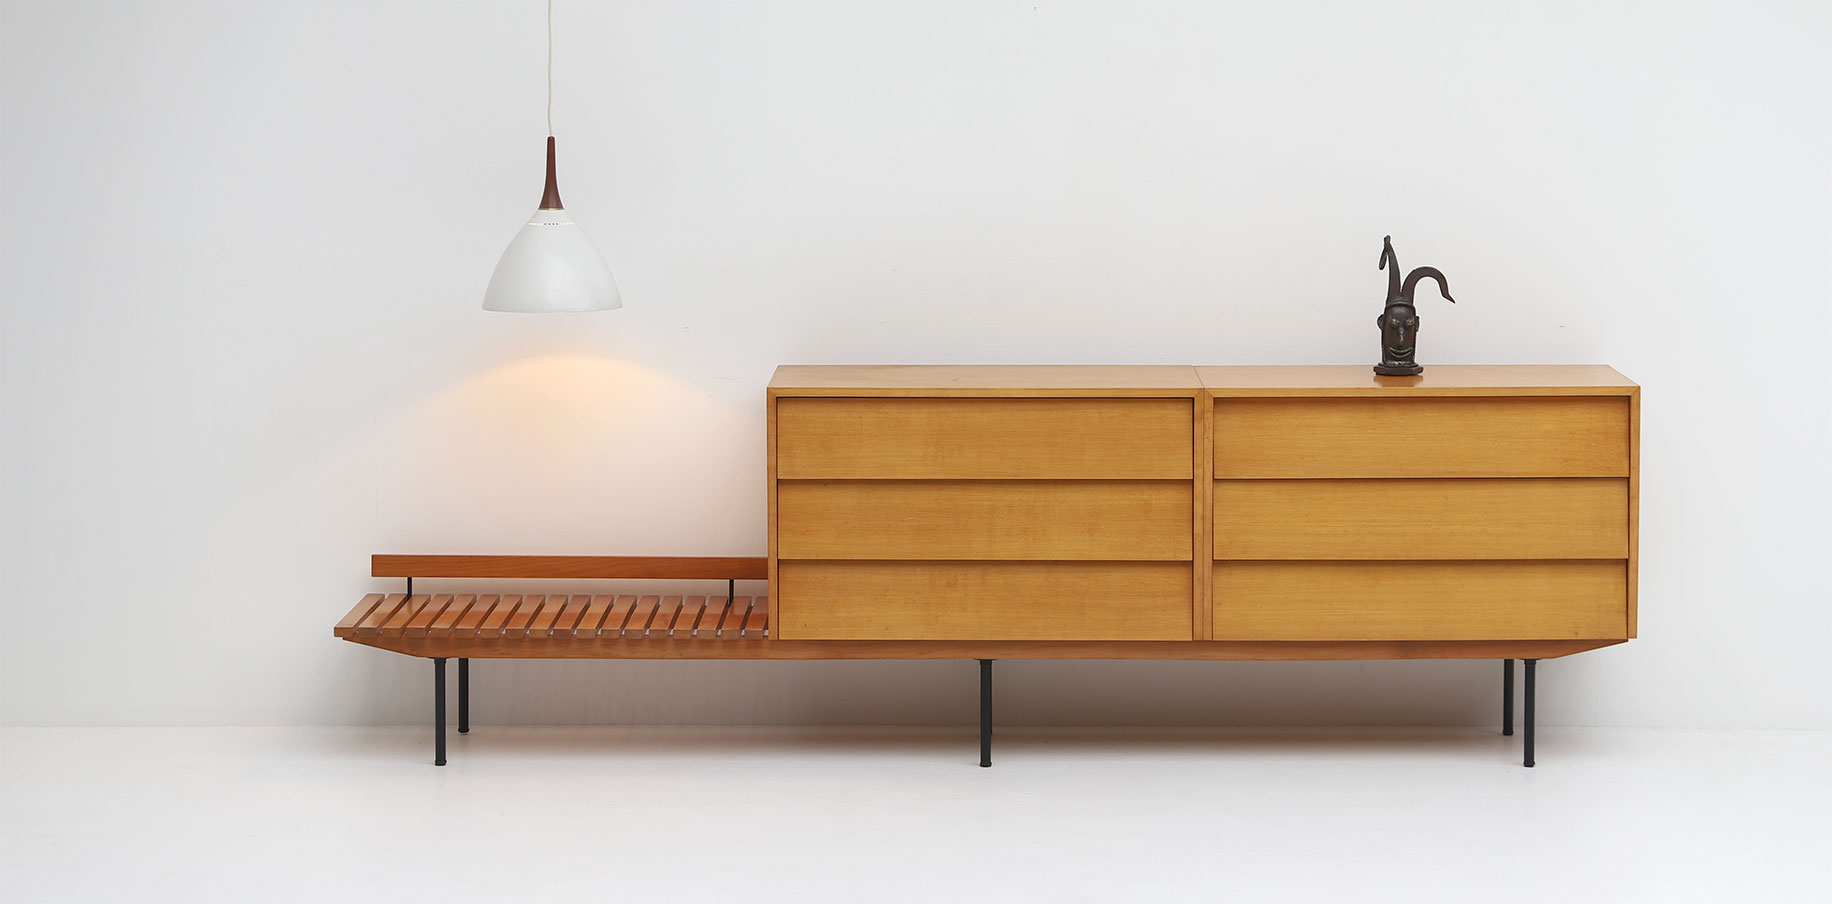 City furniture highlight 4